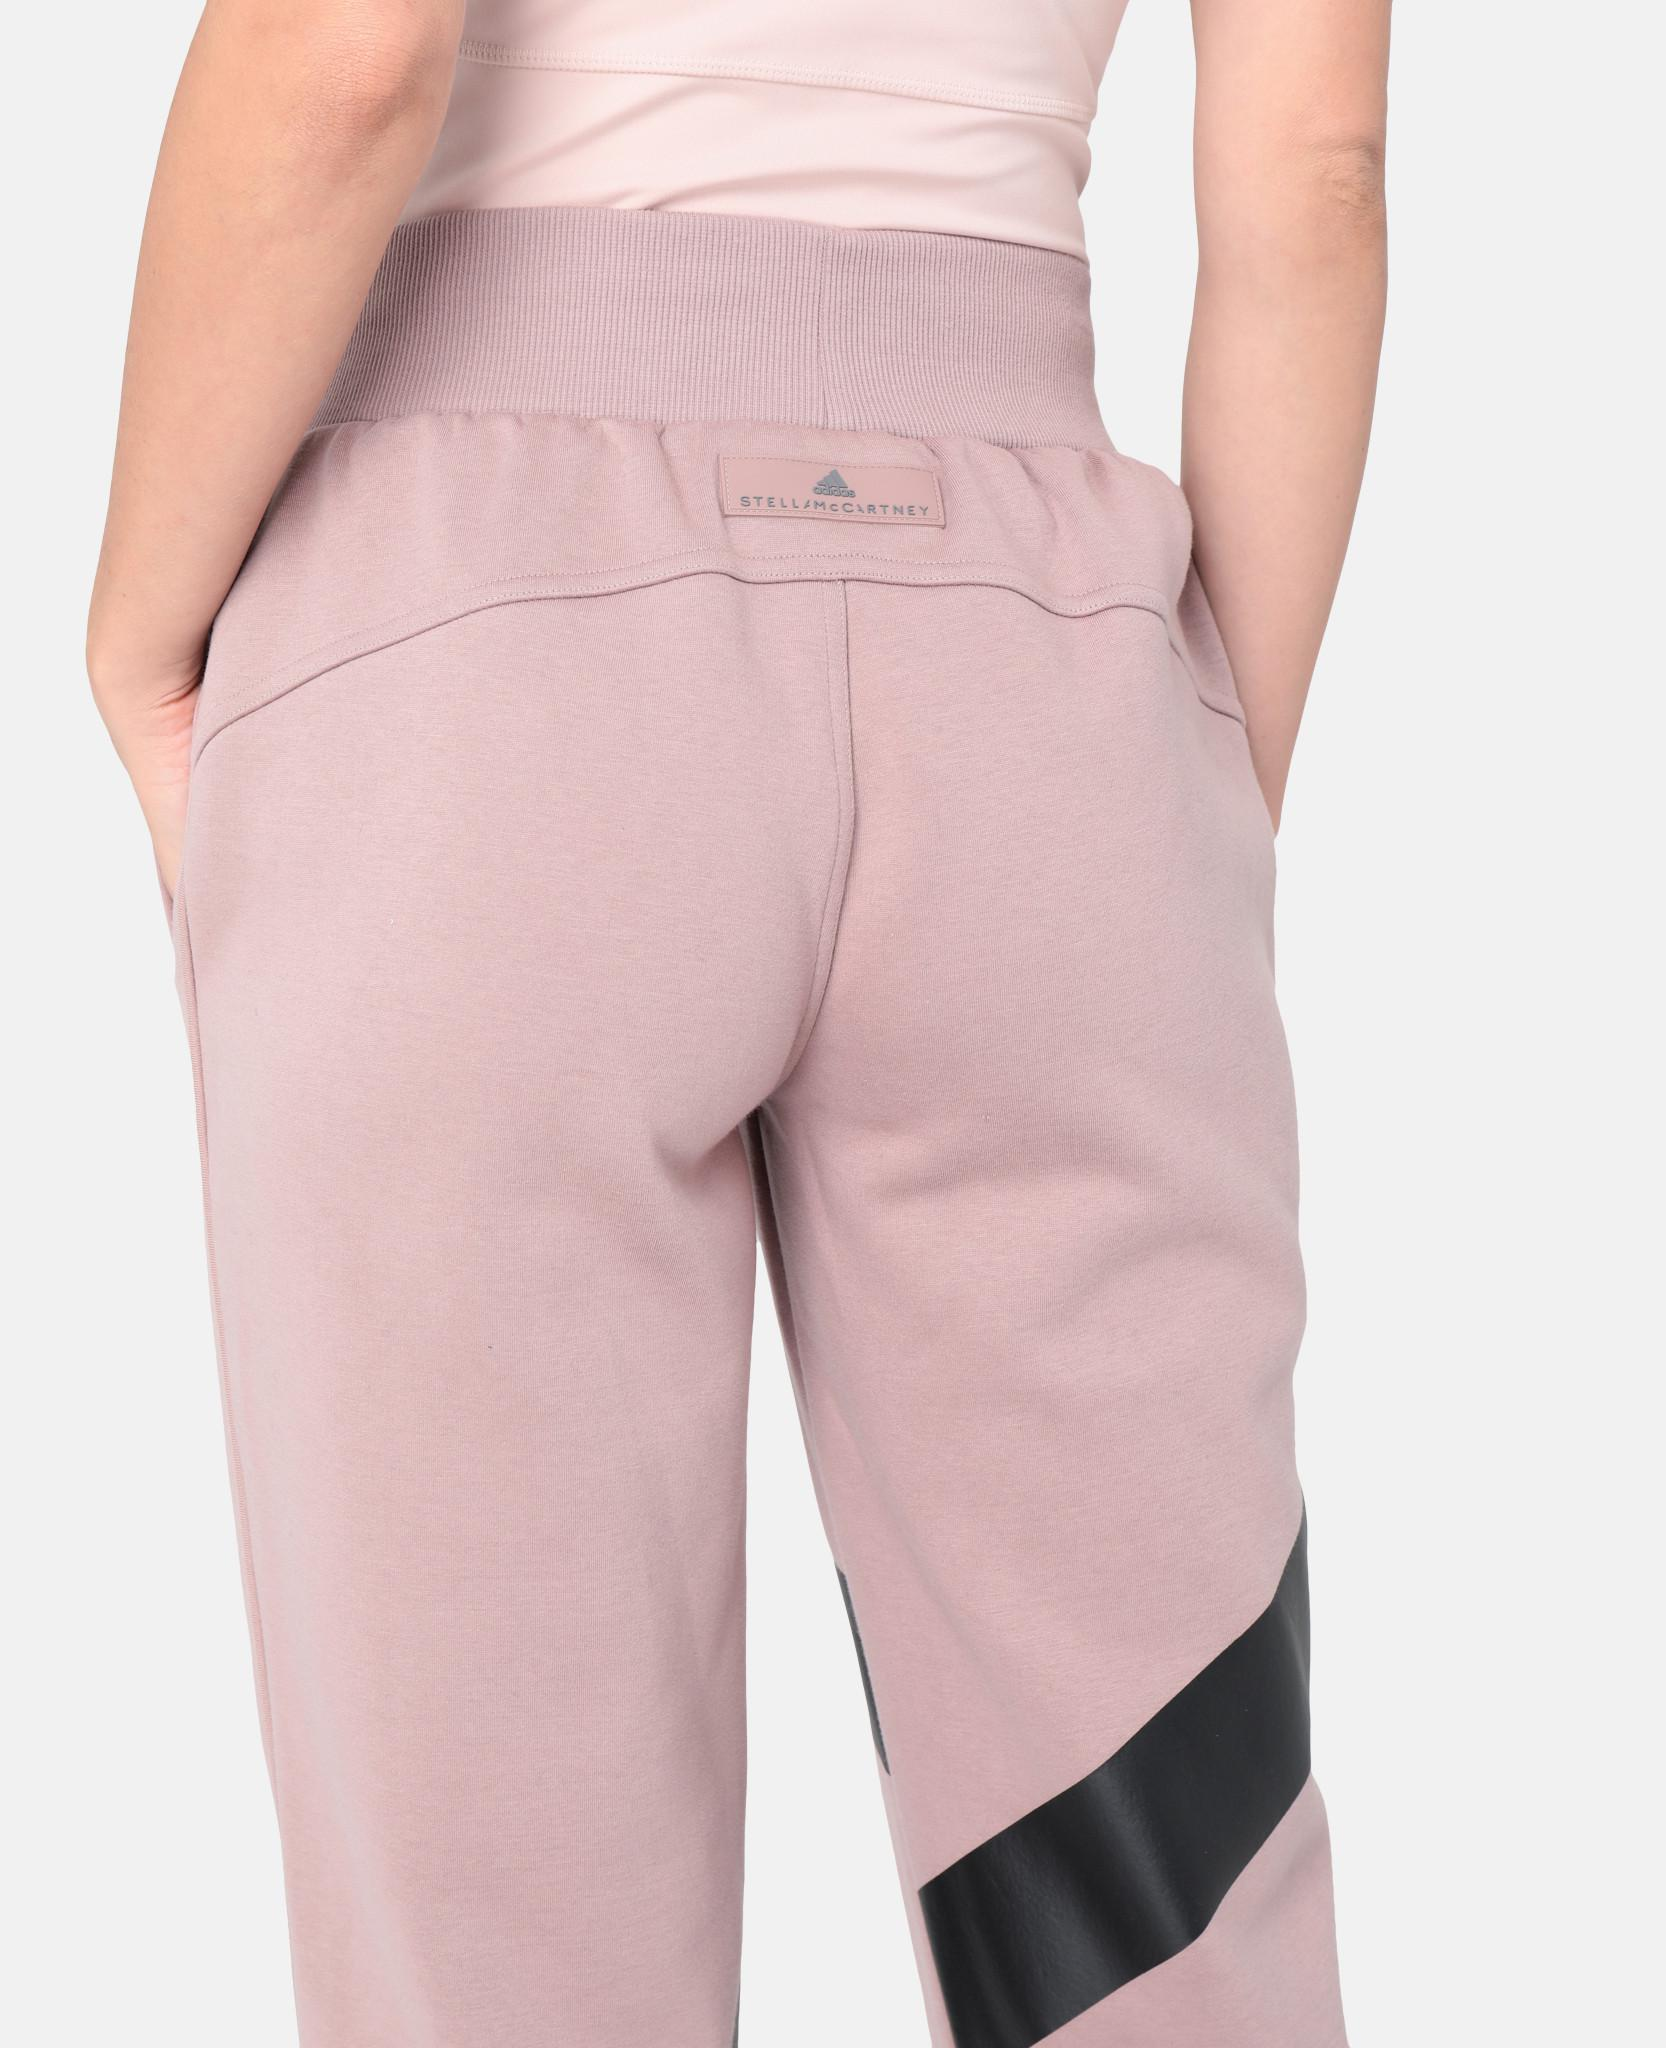 d745794727d97f adidas By Stella McCartney Pink Yoga Comfort Sweatpants in Pink - Lyst